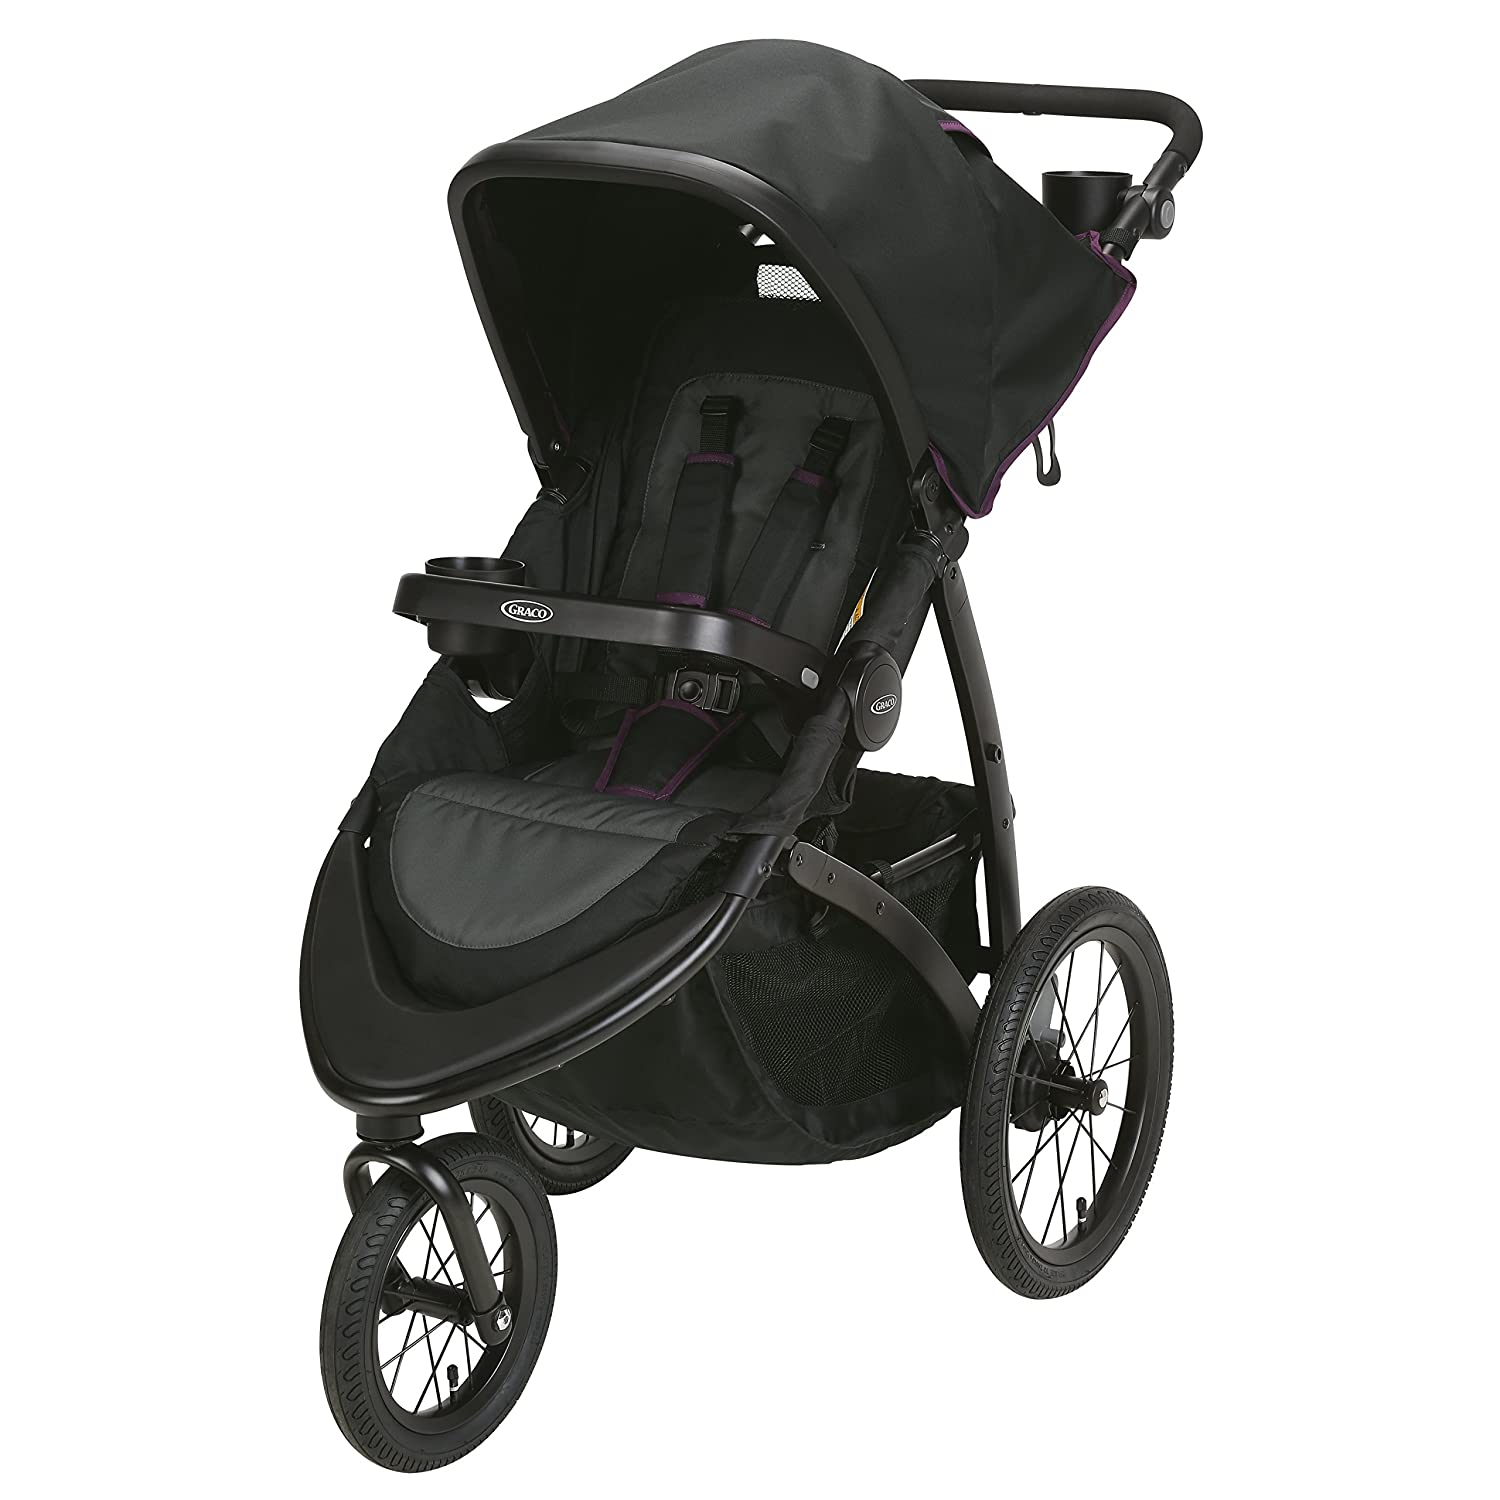 Graco Road Master Jogger Stroller Review